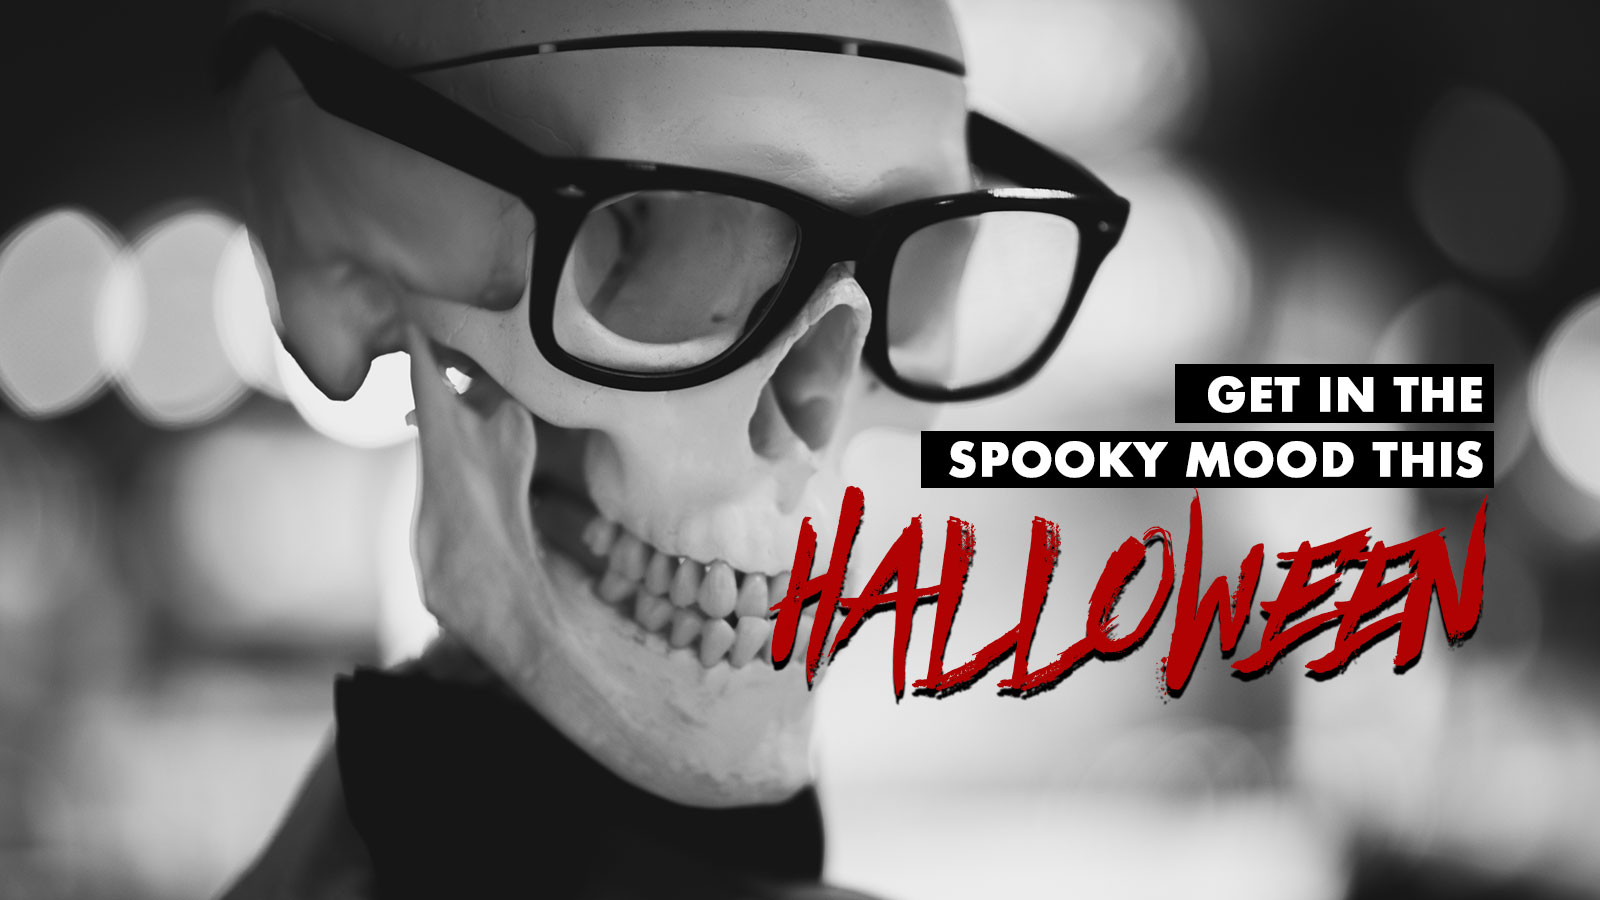 Get in the spooky mood this Halloween.